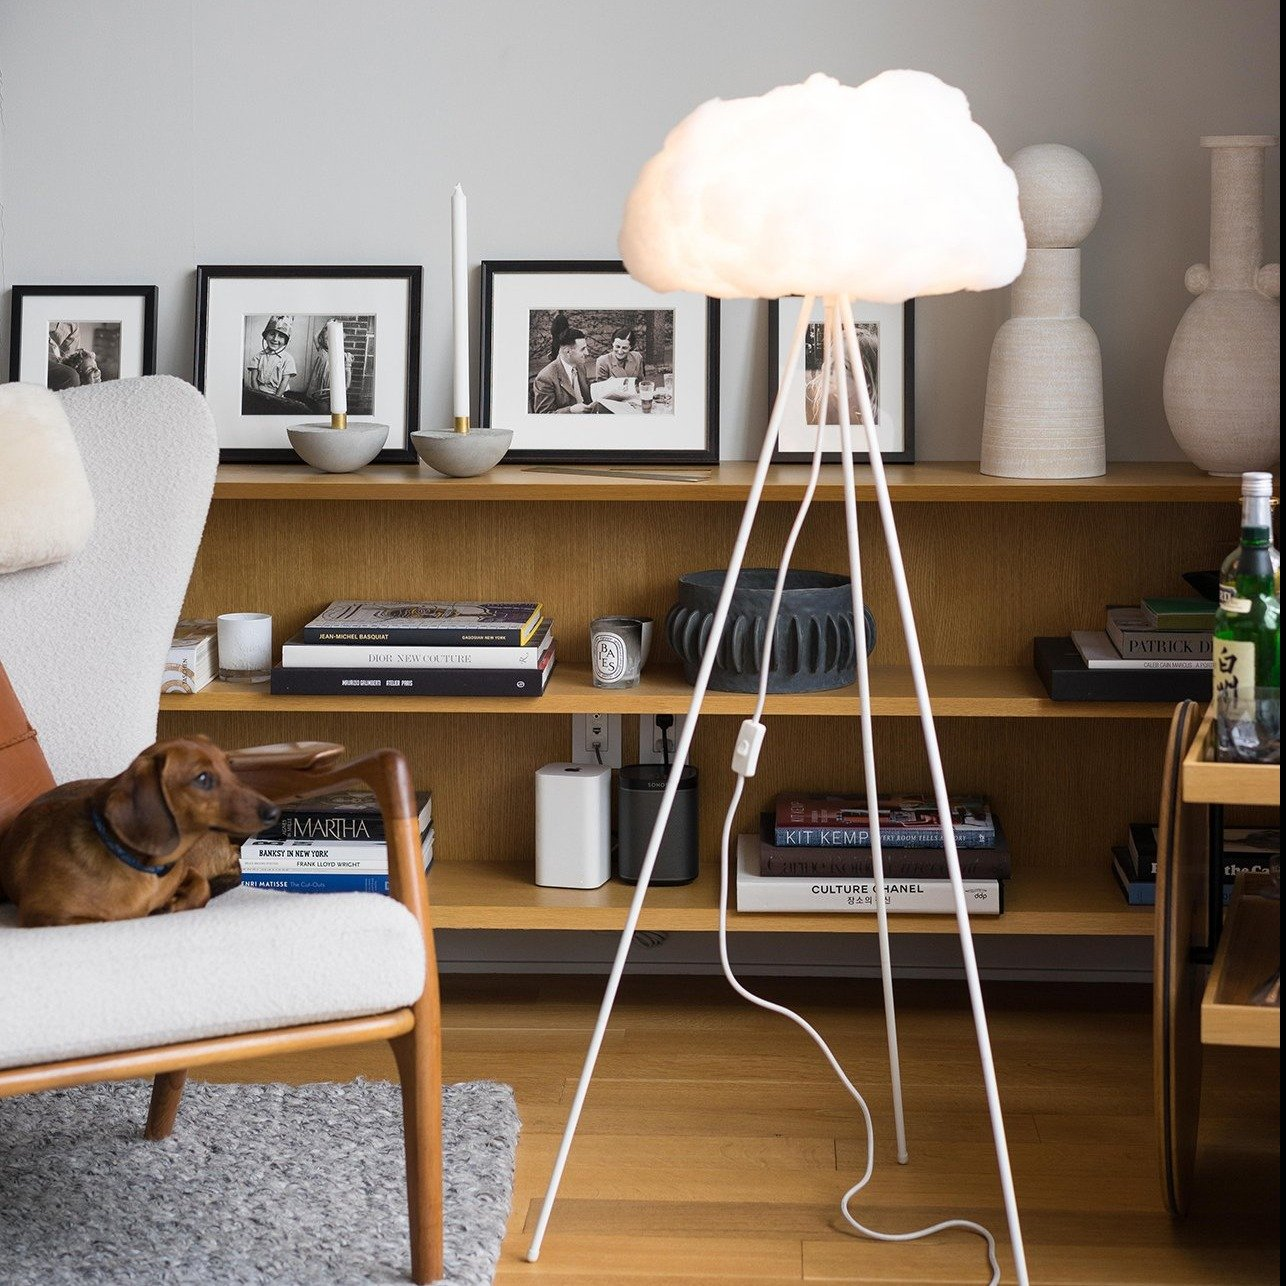 richard clarkson Lampshade Cloud - Floor Standing